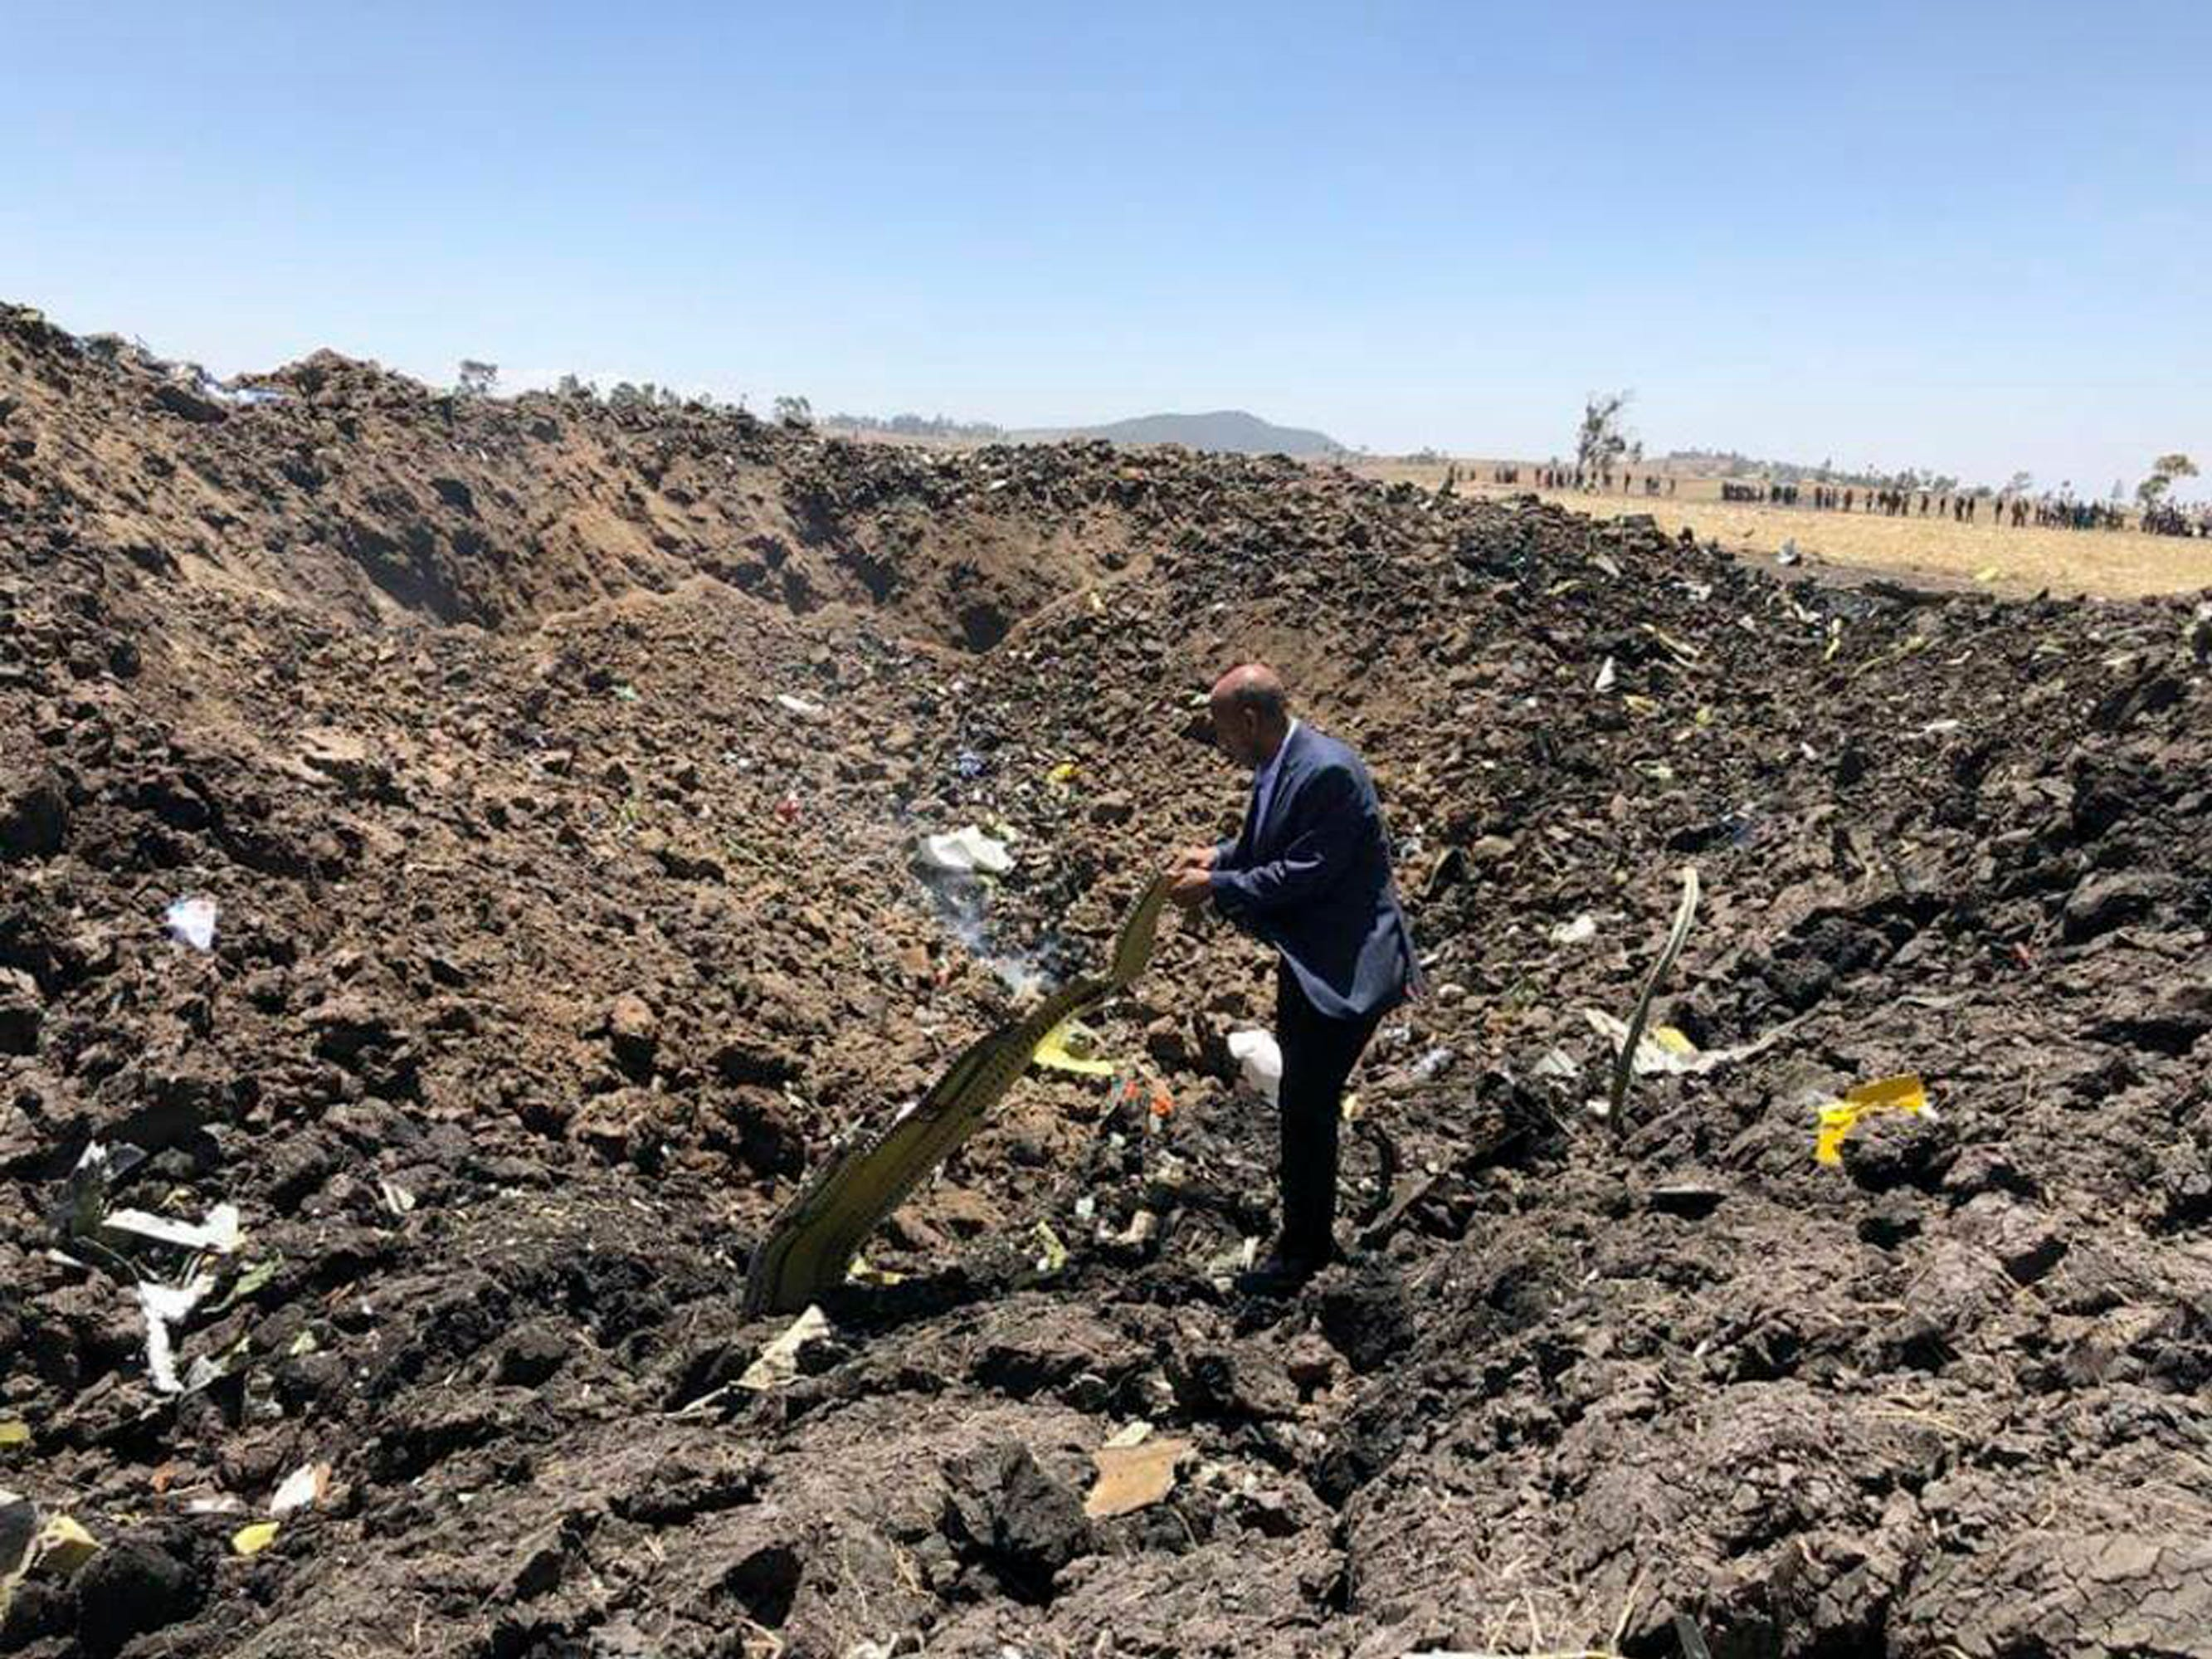 The CEO of Ethiopian Airlines, Tewolde Gebremariam, looks at the wreckage of the plane that crashed shortly after takeoff from Addis Ababa, Ethiopia.